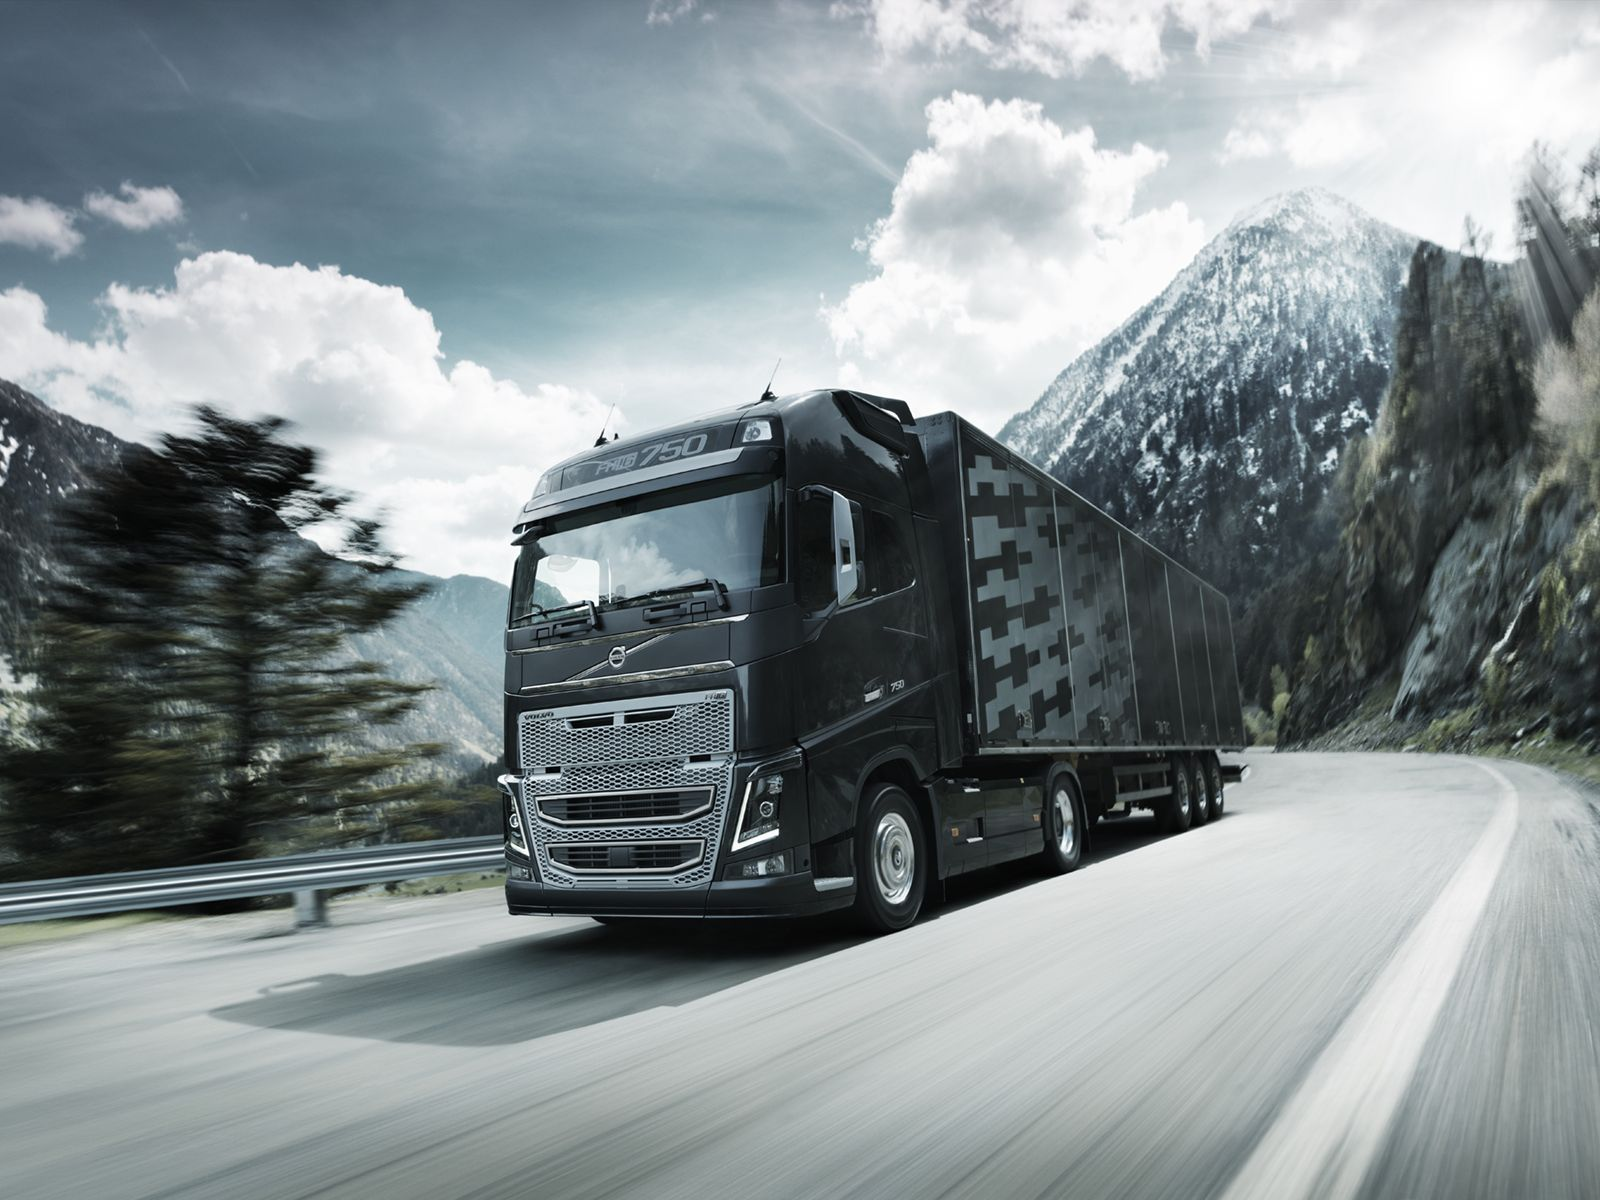 Heres What Every Trucker Should Know About The New Volvo FH Top Ten Stories Including Numerous World First Innovations